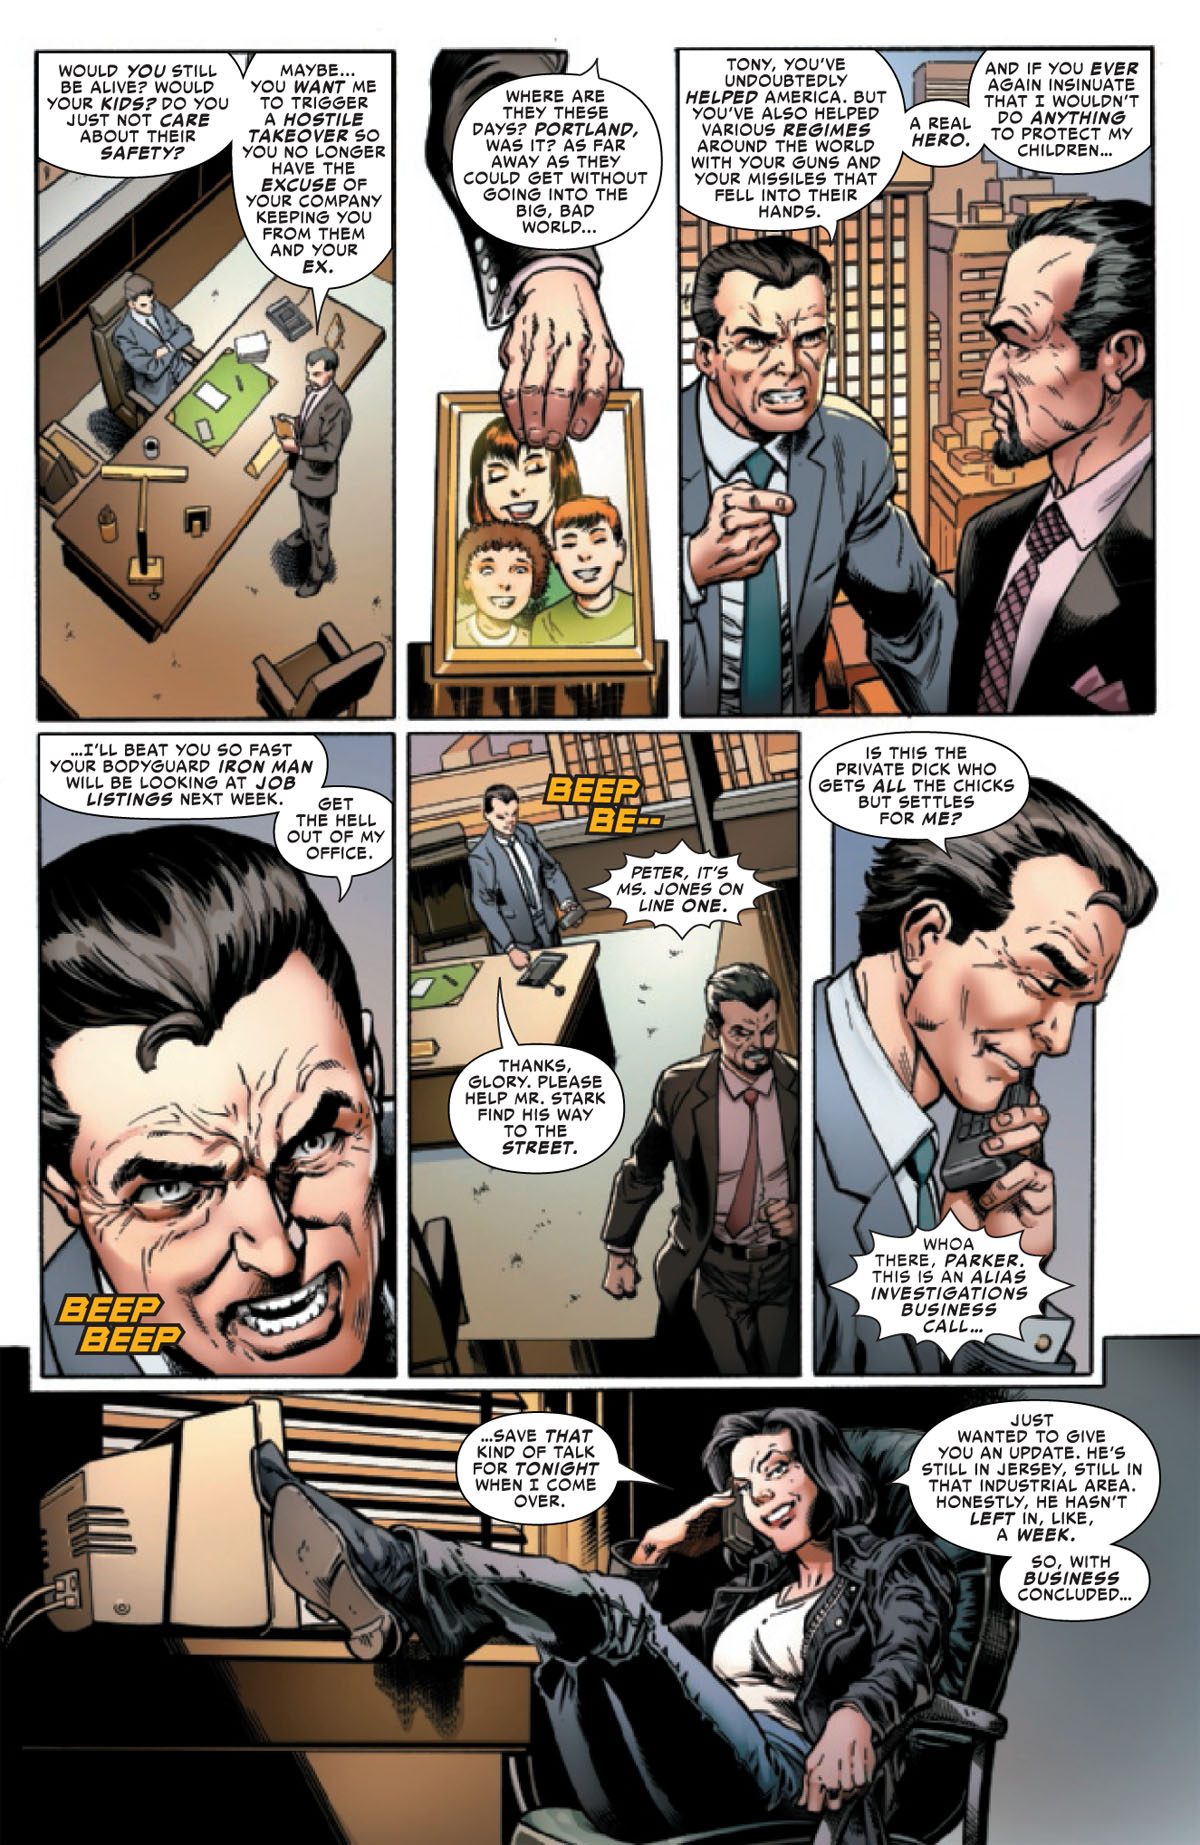 Spider-Man: Life Story #4 page 4